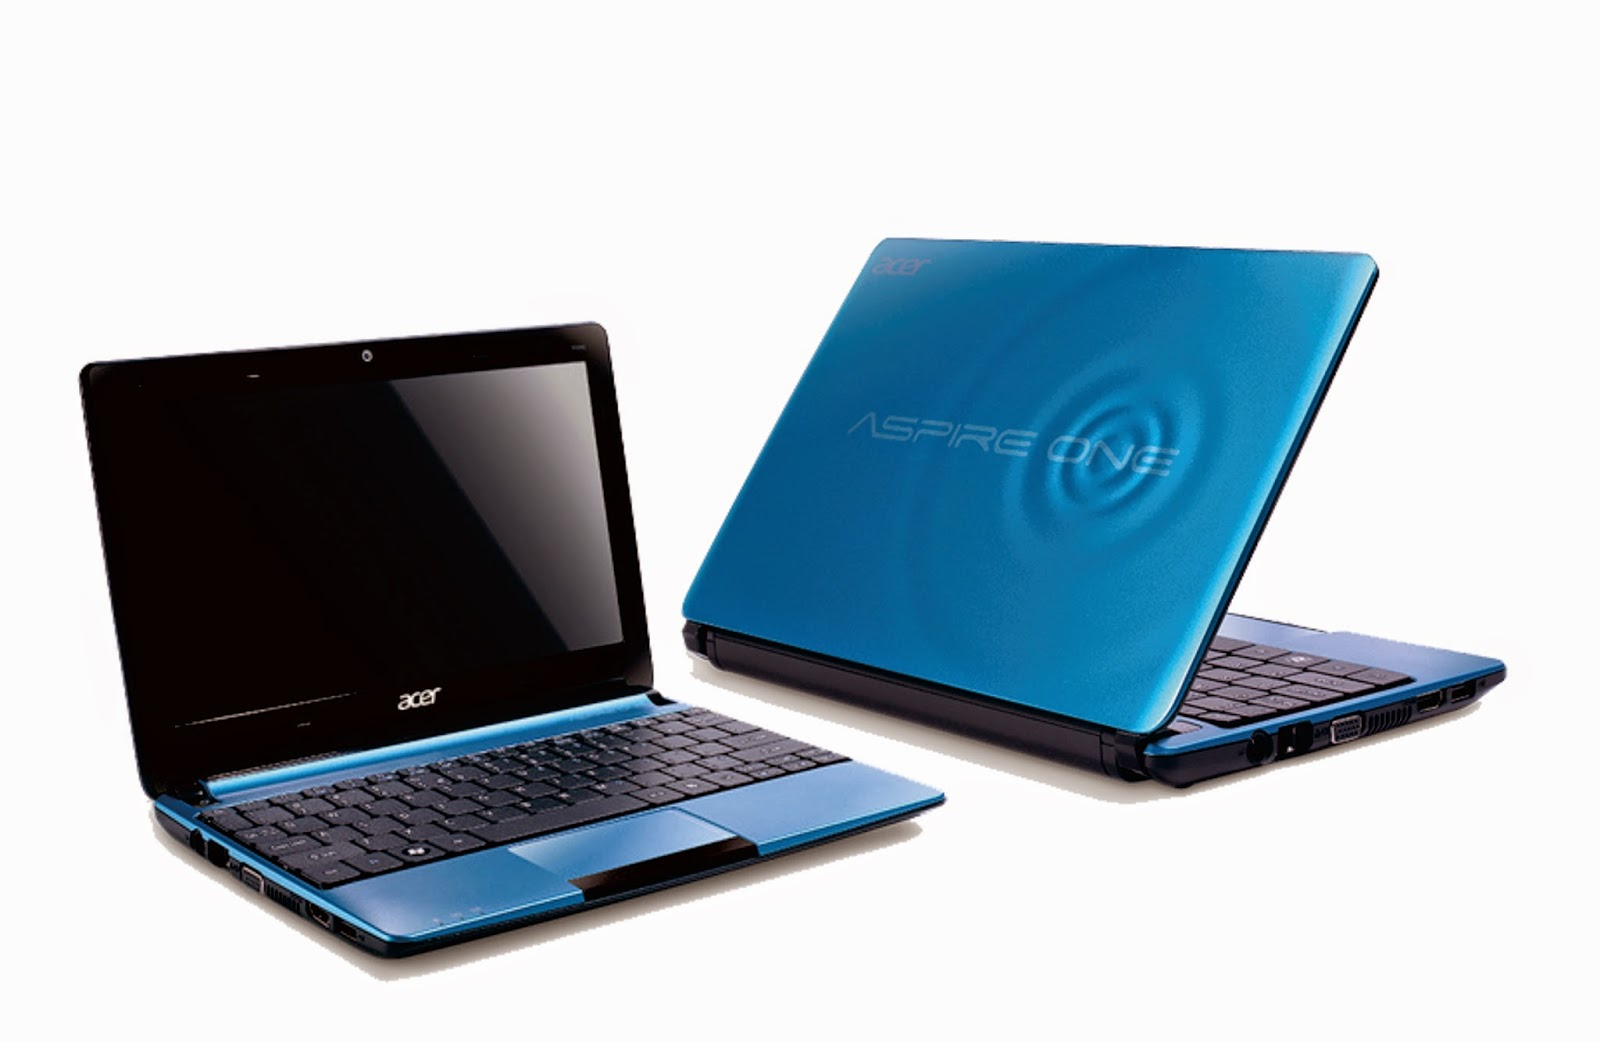 Acer Aspire One D150 Drivers Windows XP - YouNotebookDriver